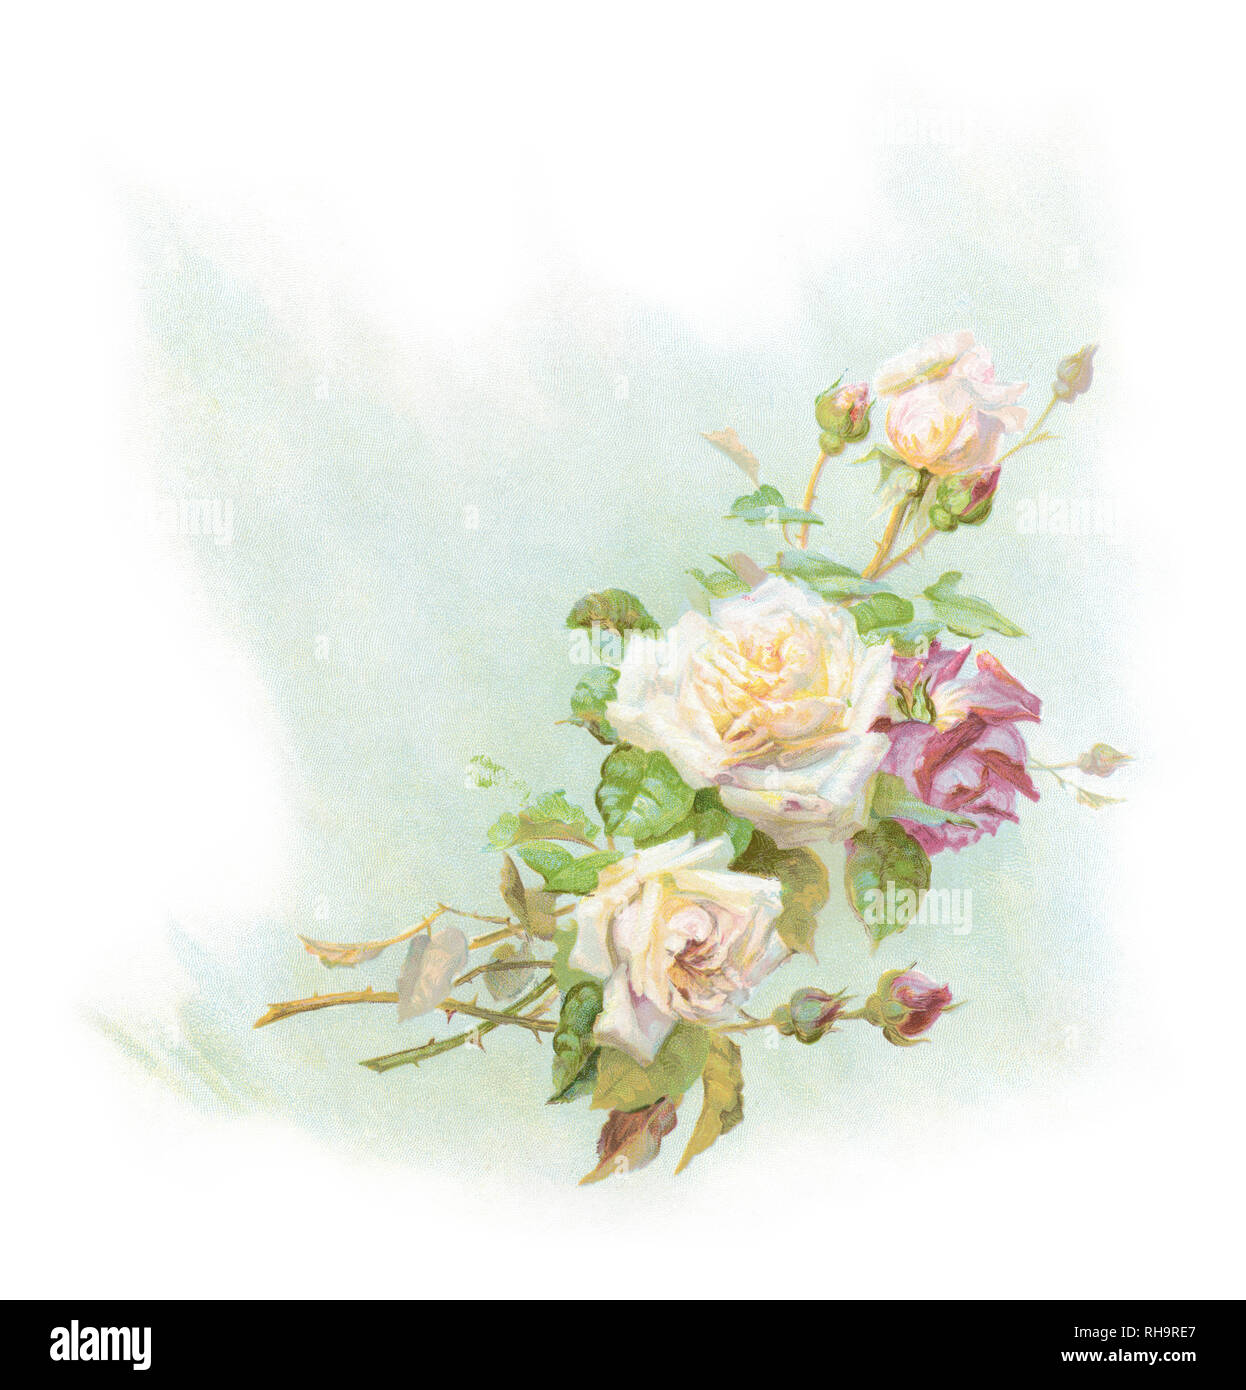 Antique c1890 chromolithographic illustration of a rose bouquet, printed in Germany. SOURCE: ORIGINAL MARRIAGE BOOKLET. - Stock Image